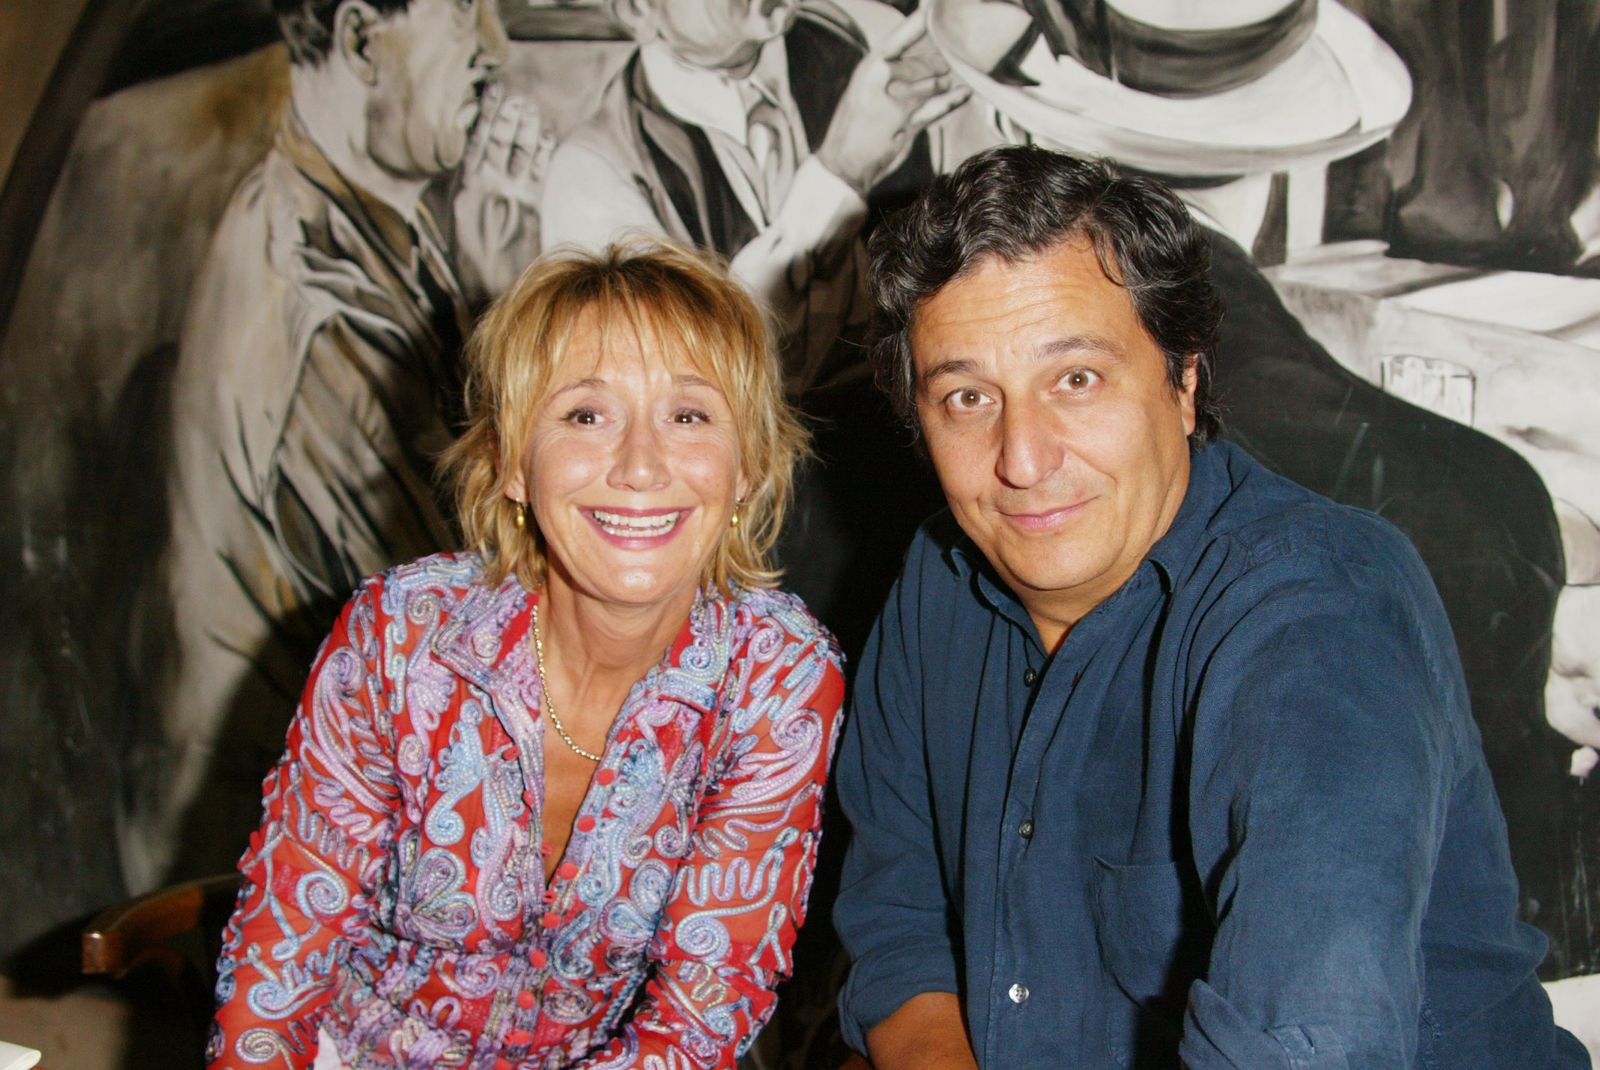 Marie-Anne Chazel et Christian Clavier | Photo : Getty Images